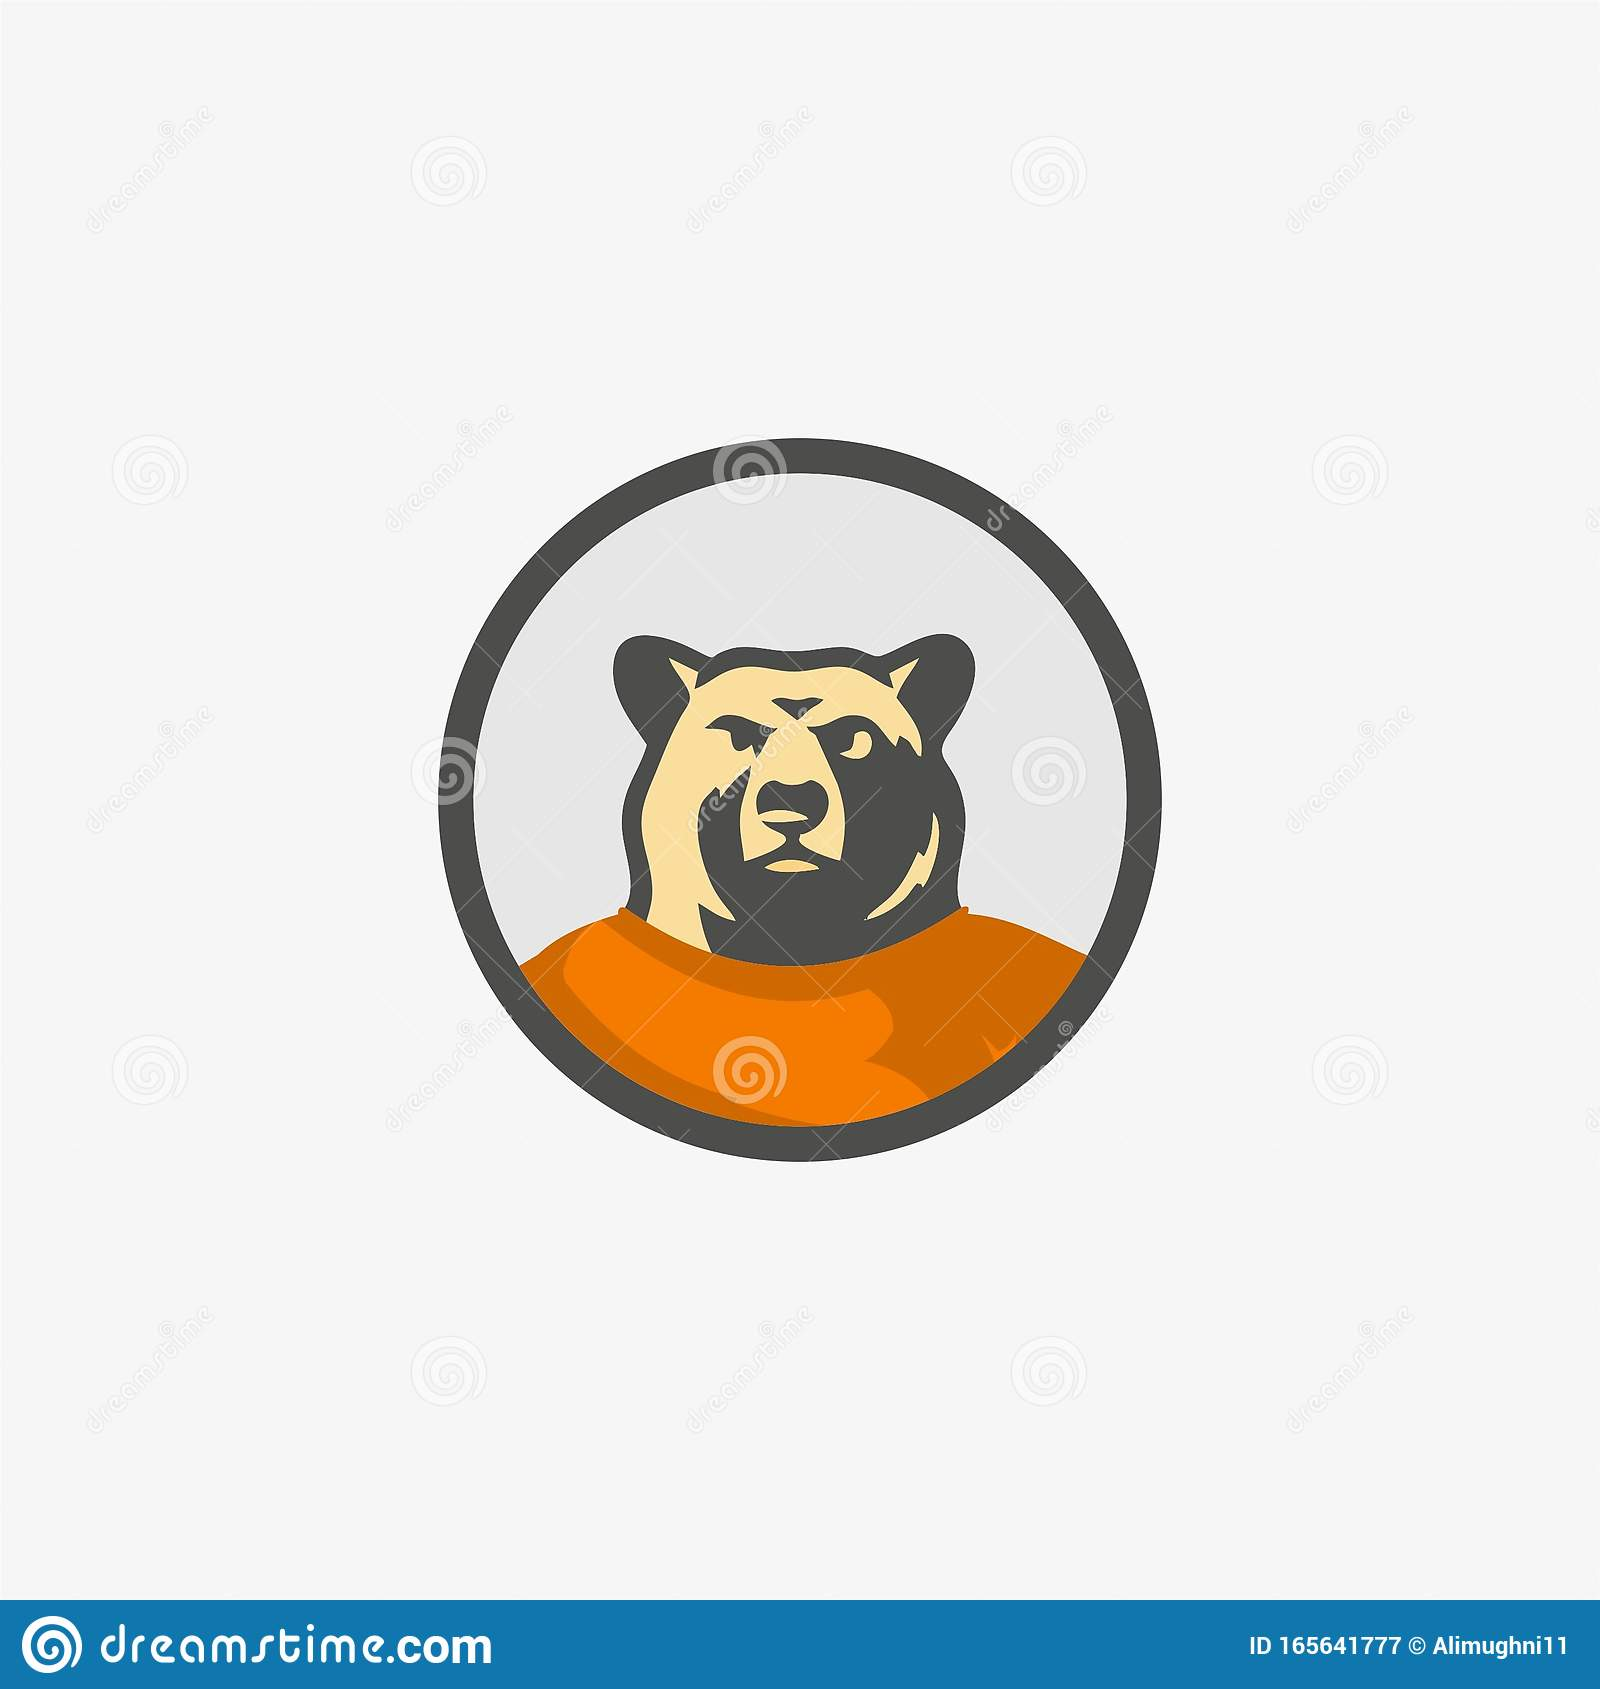 Bear Front Look Illustration For Logo Template Stock Vector Illustration Of Claw Facing 165641777 Free site with personal ads for bears and fans of hairy bears. https www dreamstime com bear front look illustration logo template simple drawn facing forward tshirt strong cartoon style image165641777